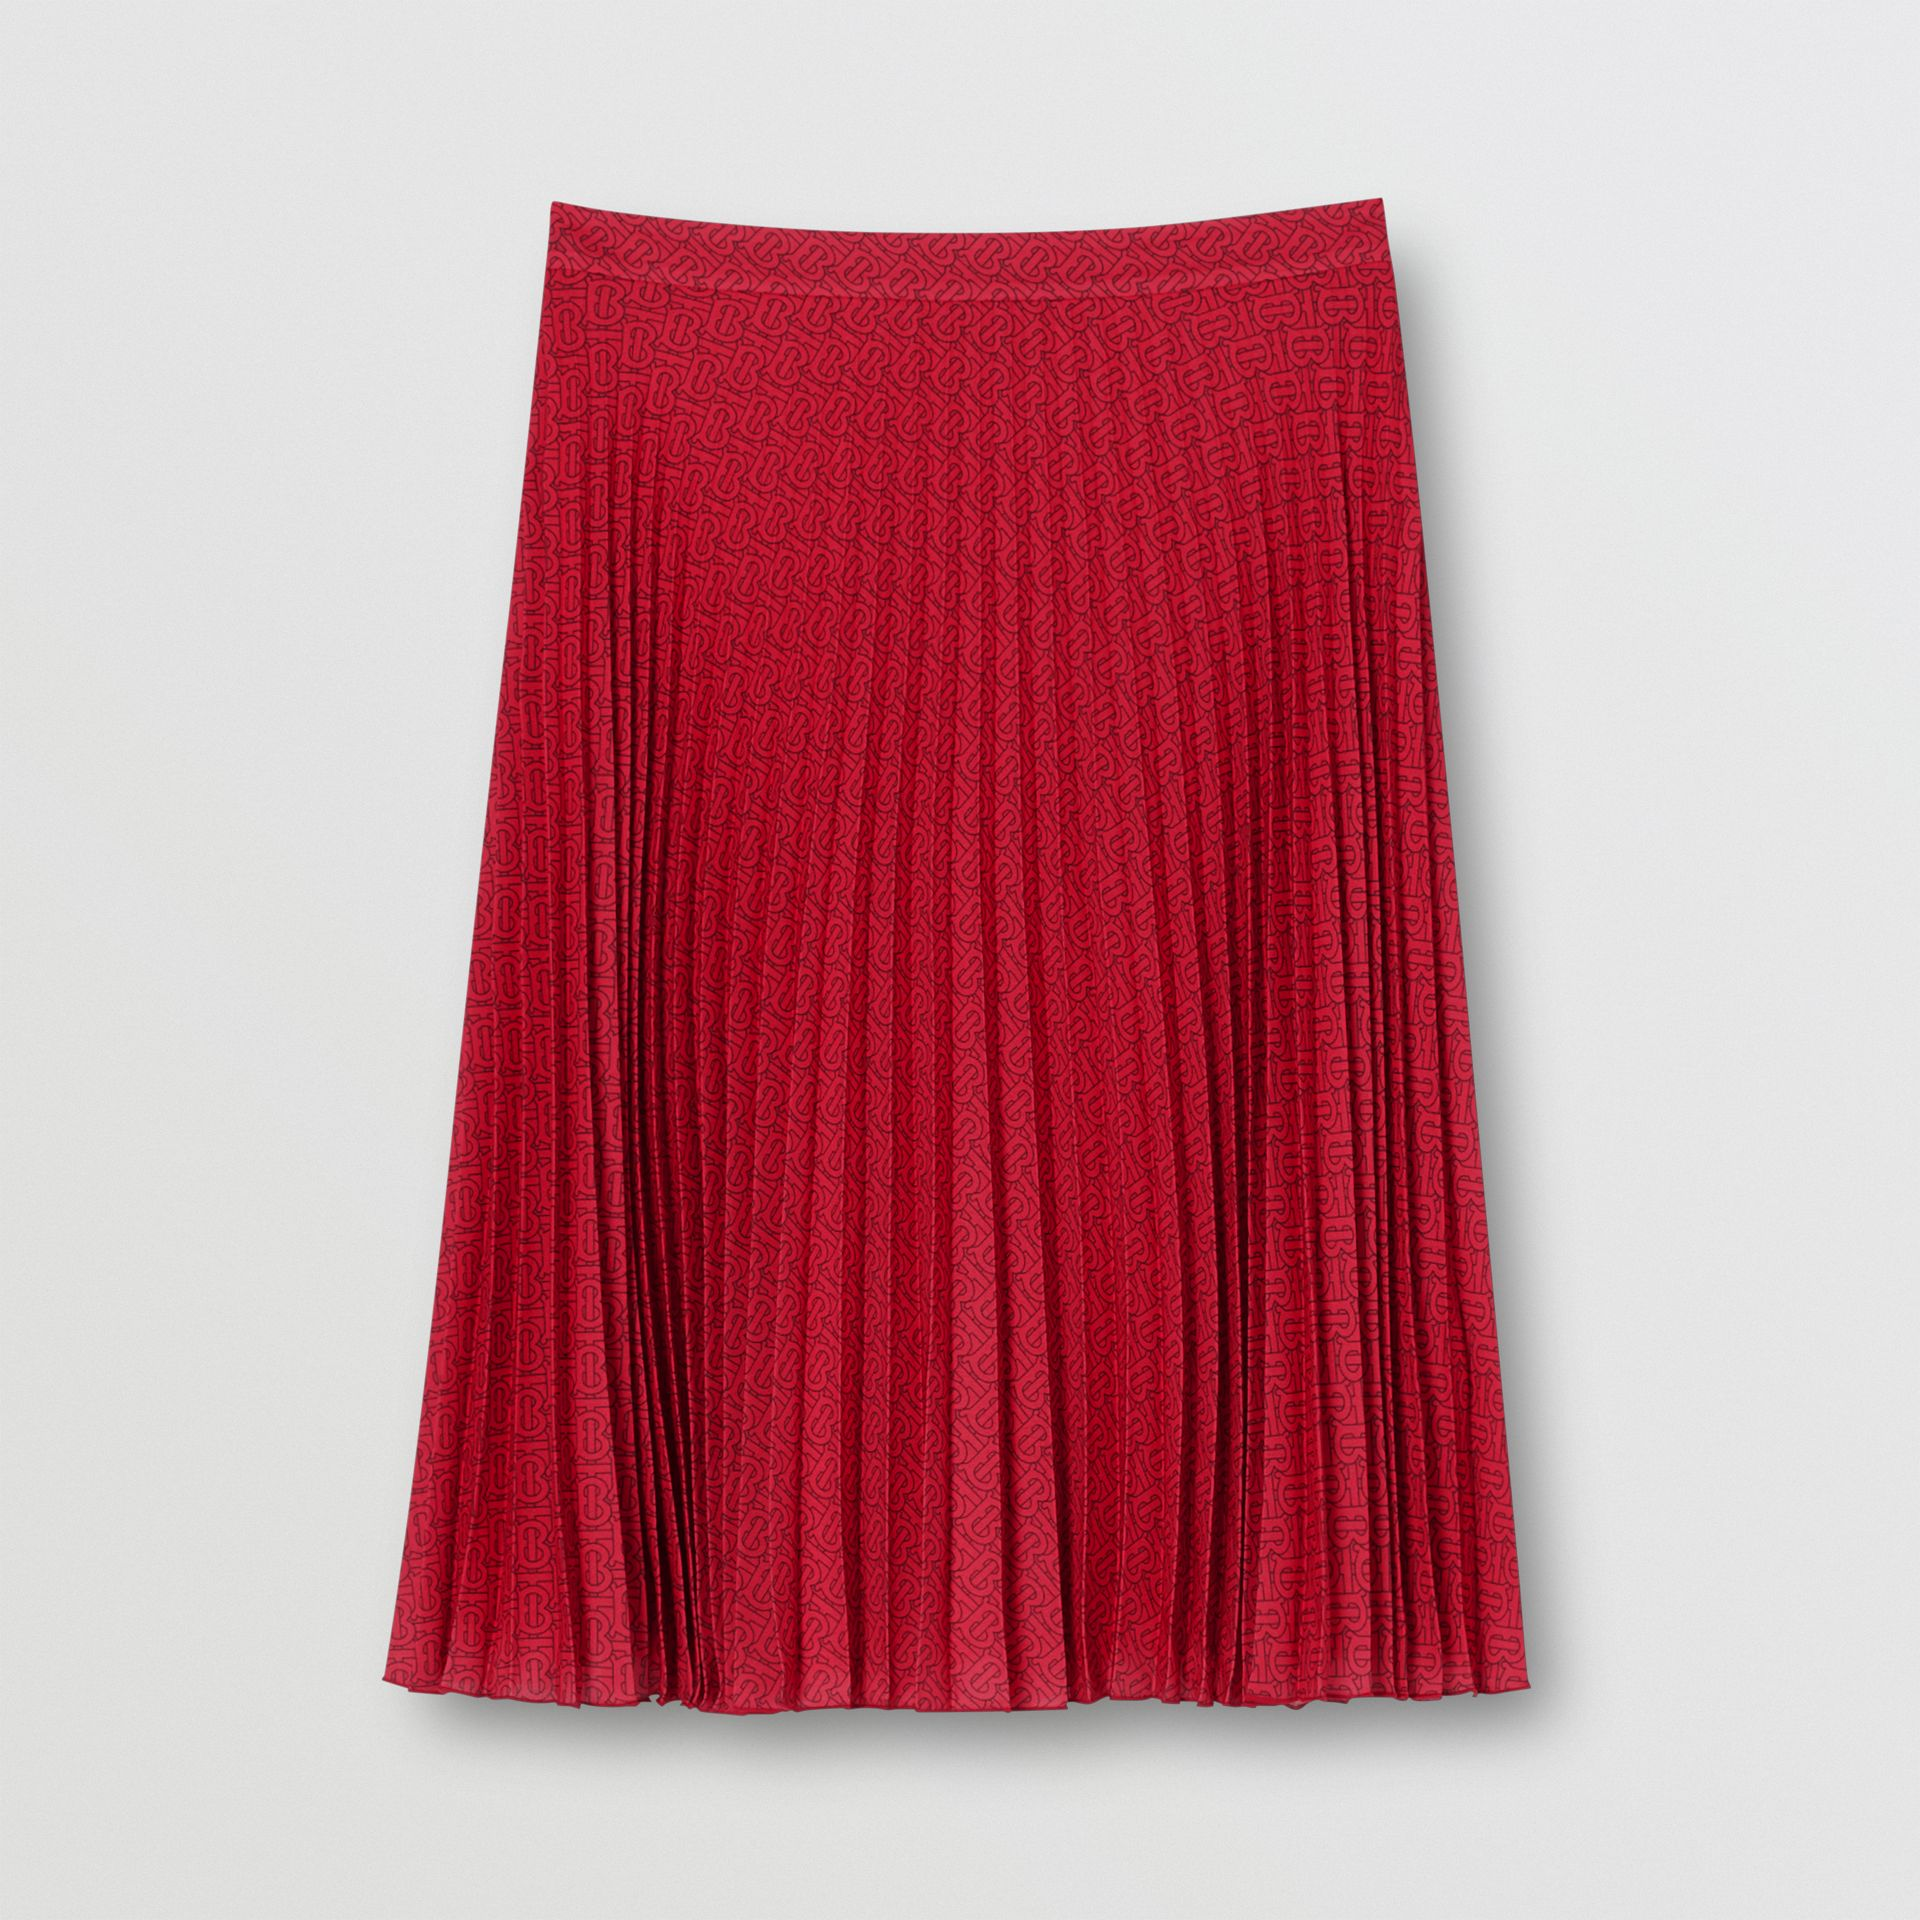 Monogram Print Pleated Skirt in Bright Red - Women | Burberry - gallery image 3